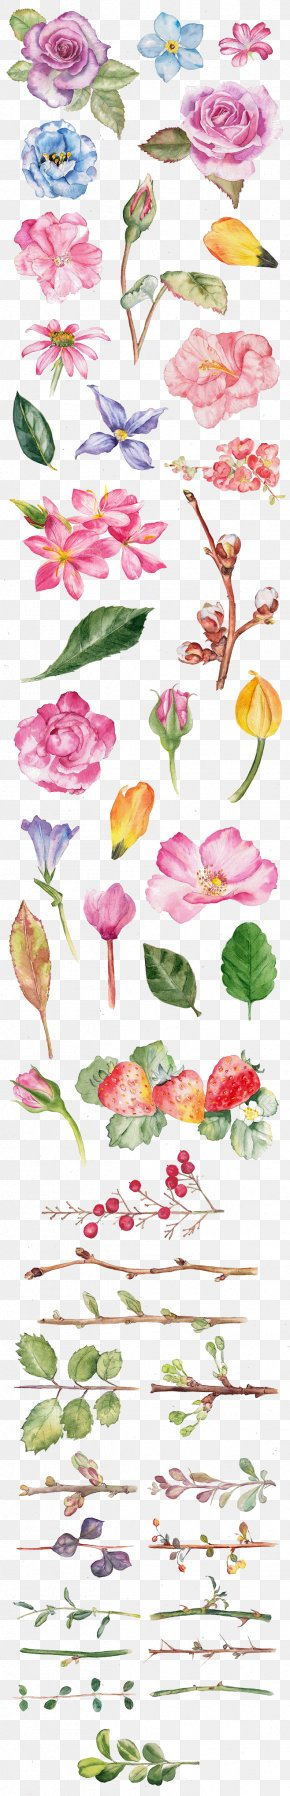 Rose Watercolor - Watercolor Painting Flower Drawing Illustration PNG